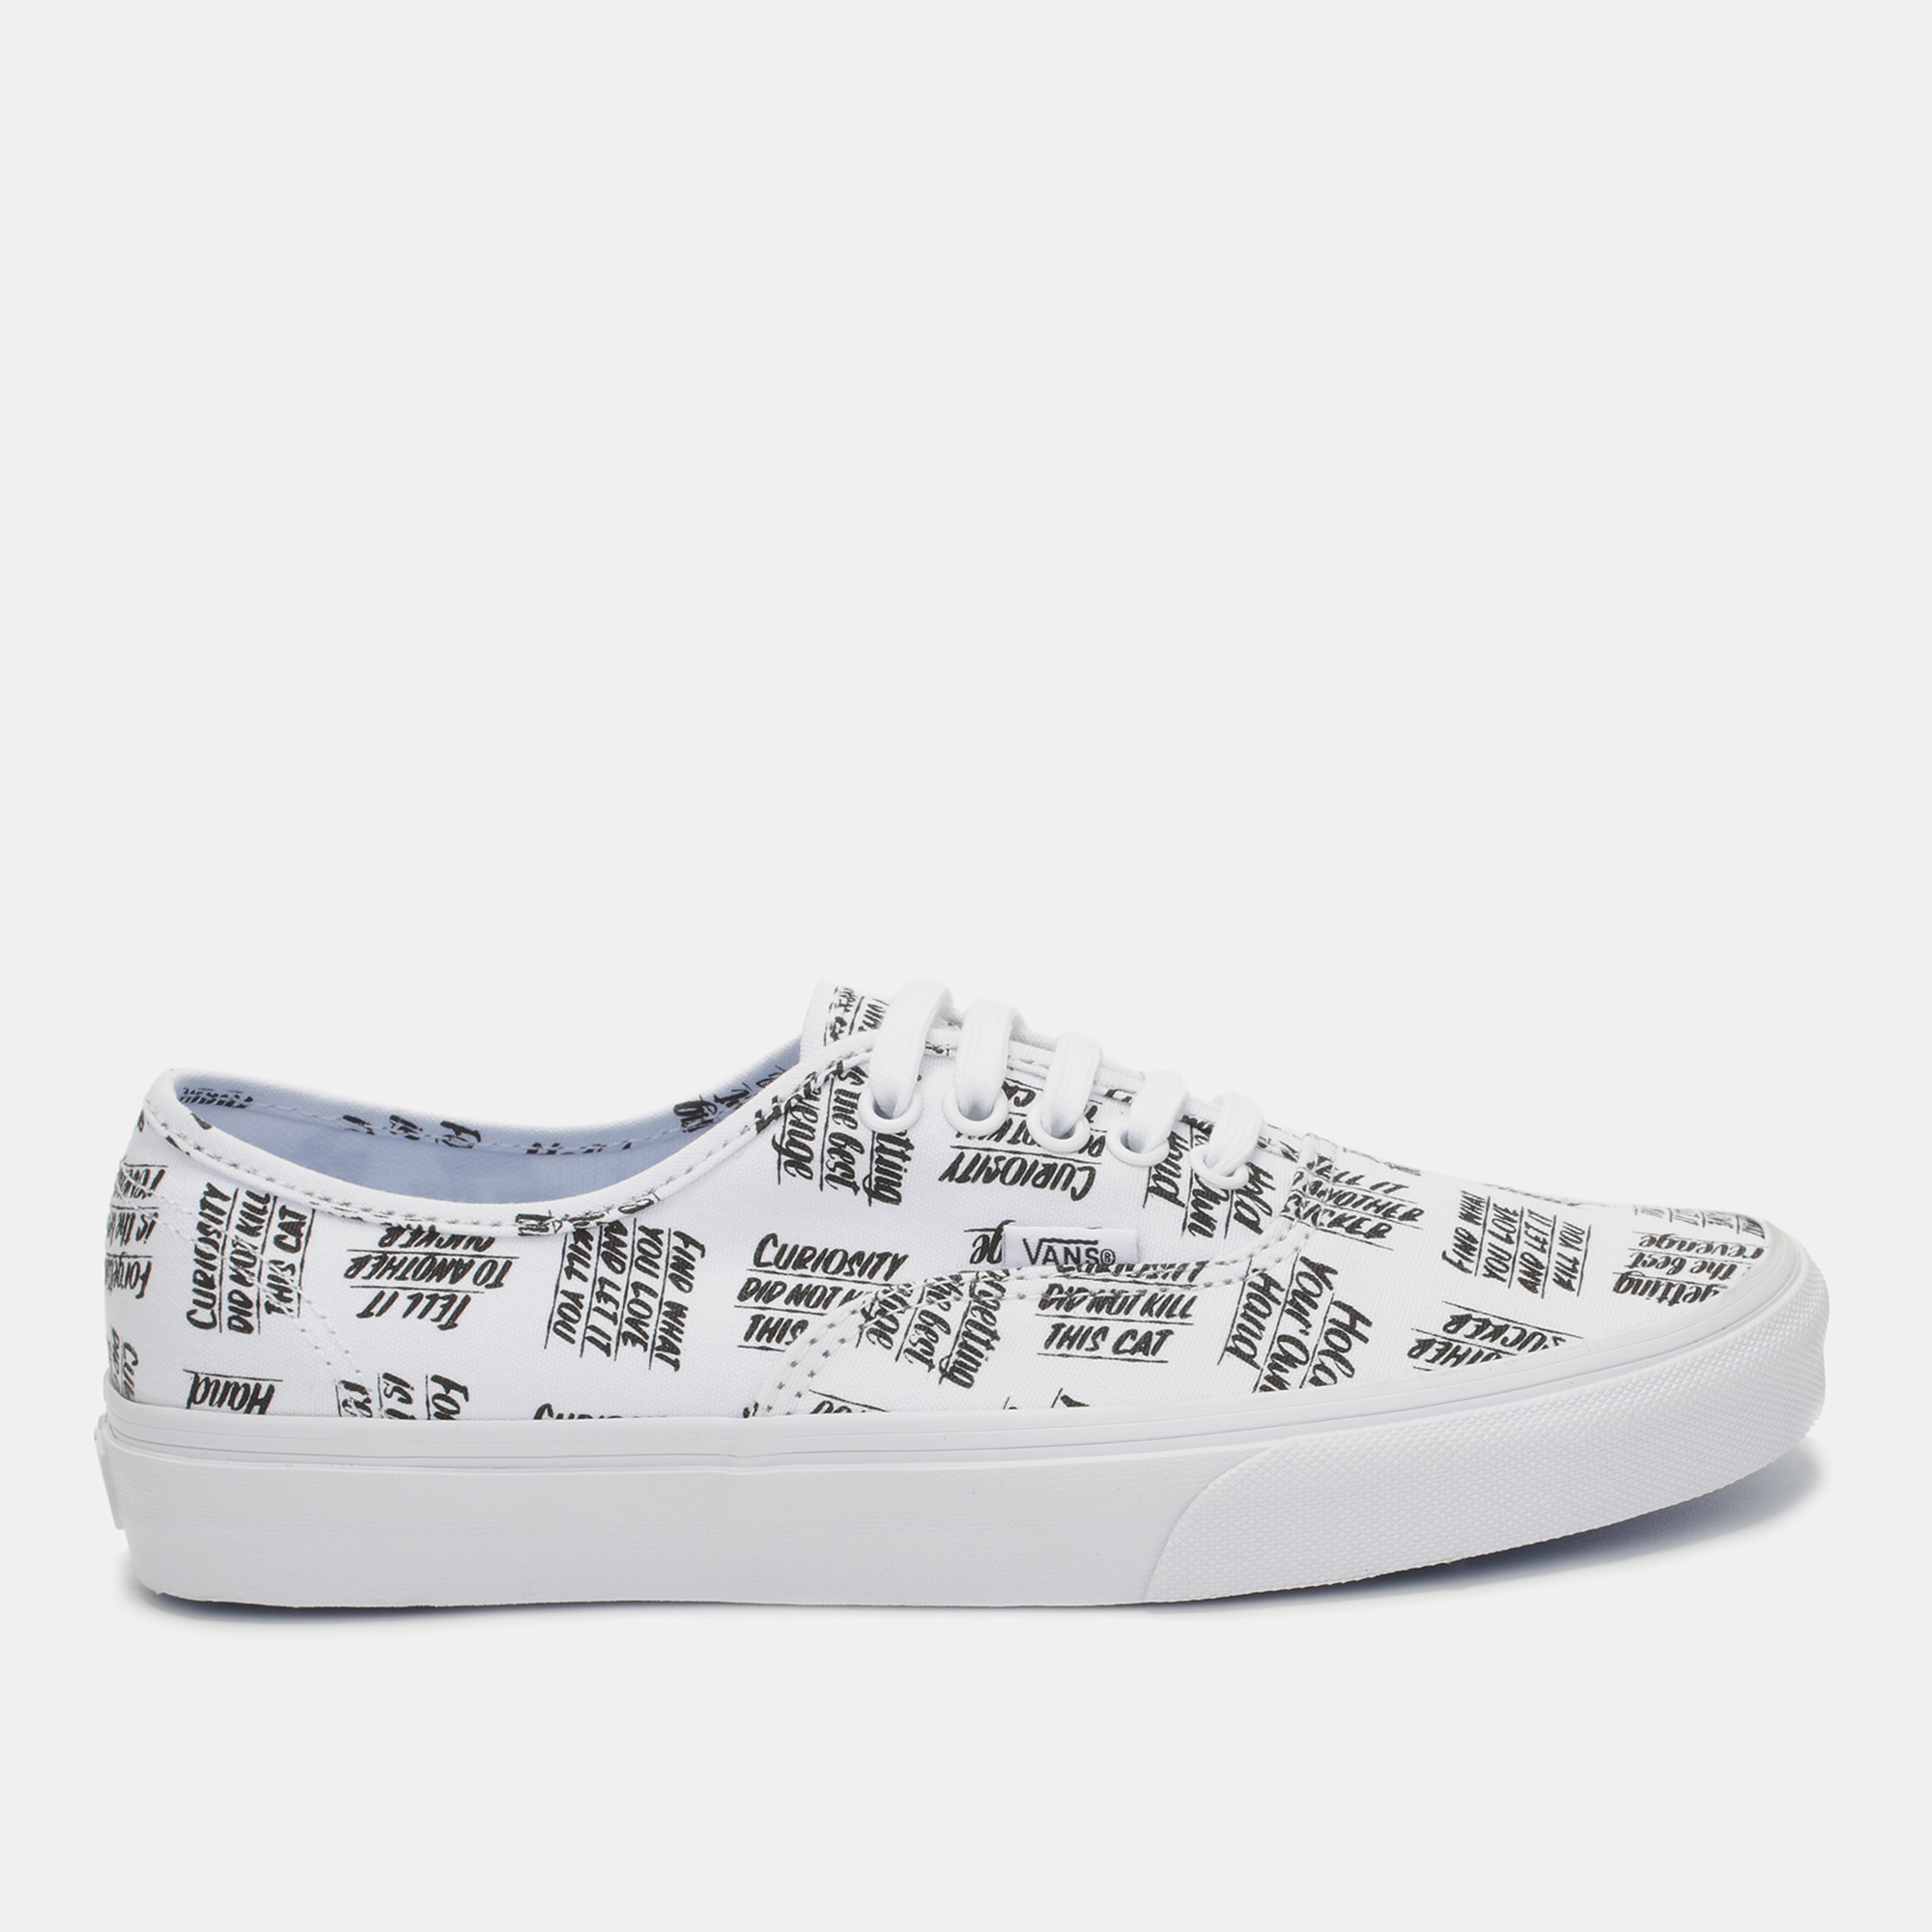 41c1cfa27c Shop White Vans Baron Von Fancy x Authentic Shoe for Womens by Vans ...